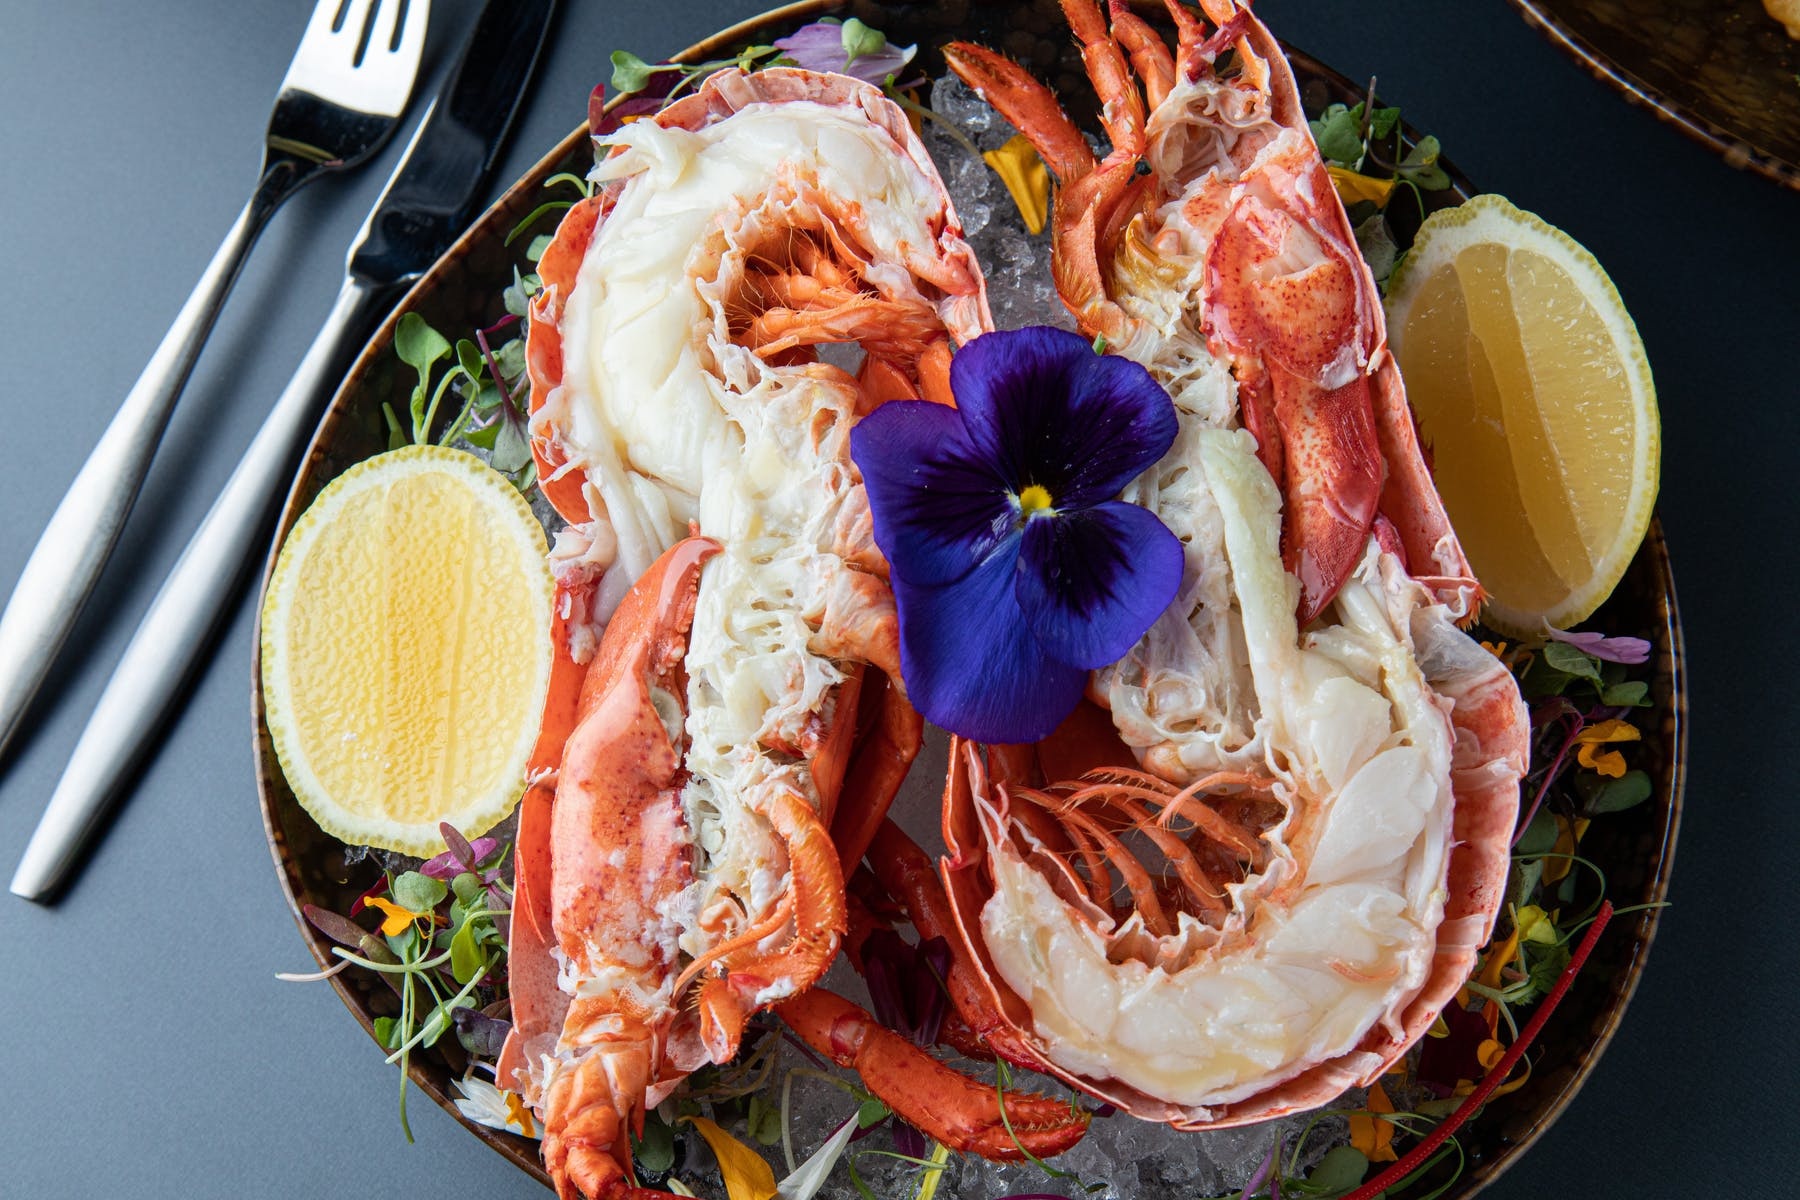 a plate filled with seafood